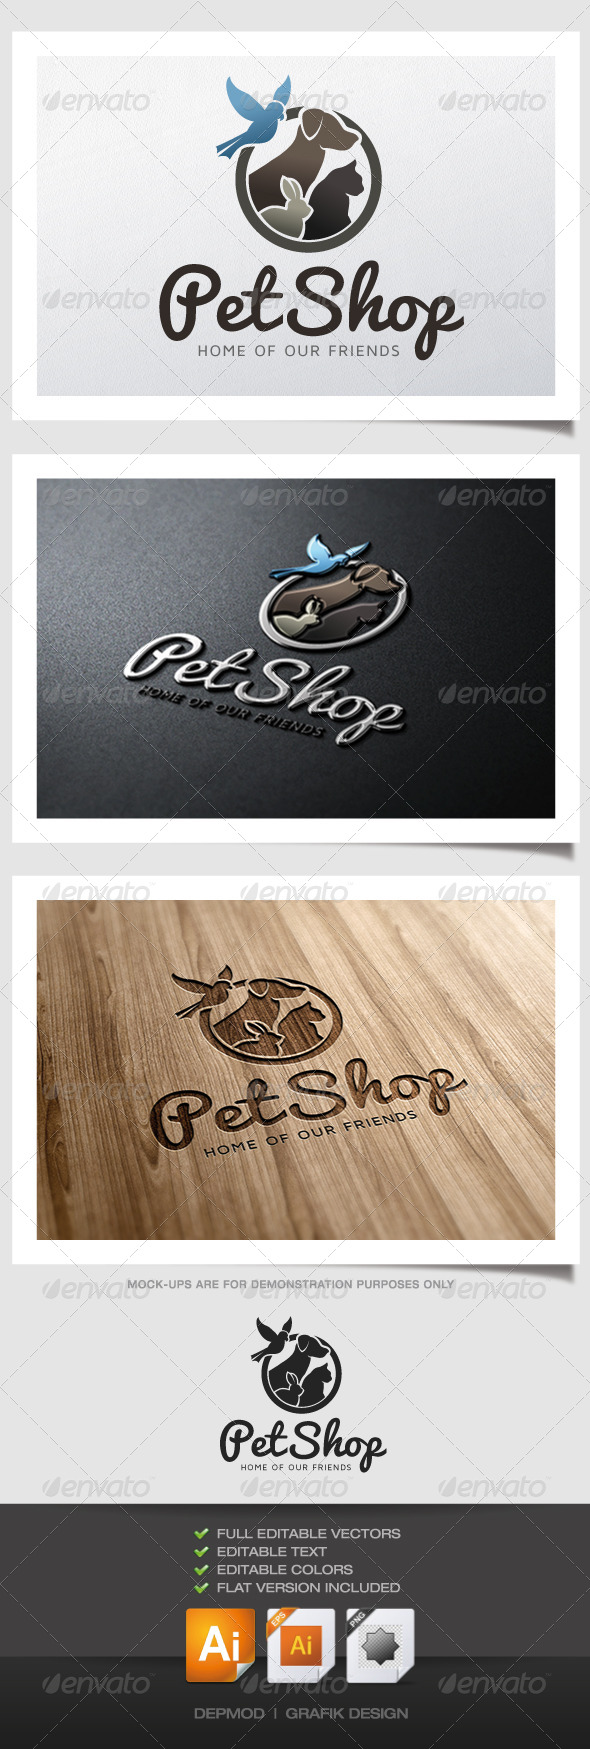 Pet Shop Logo V.02 - Animals Logo Templates